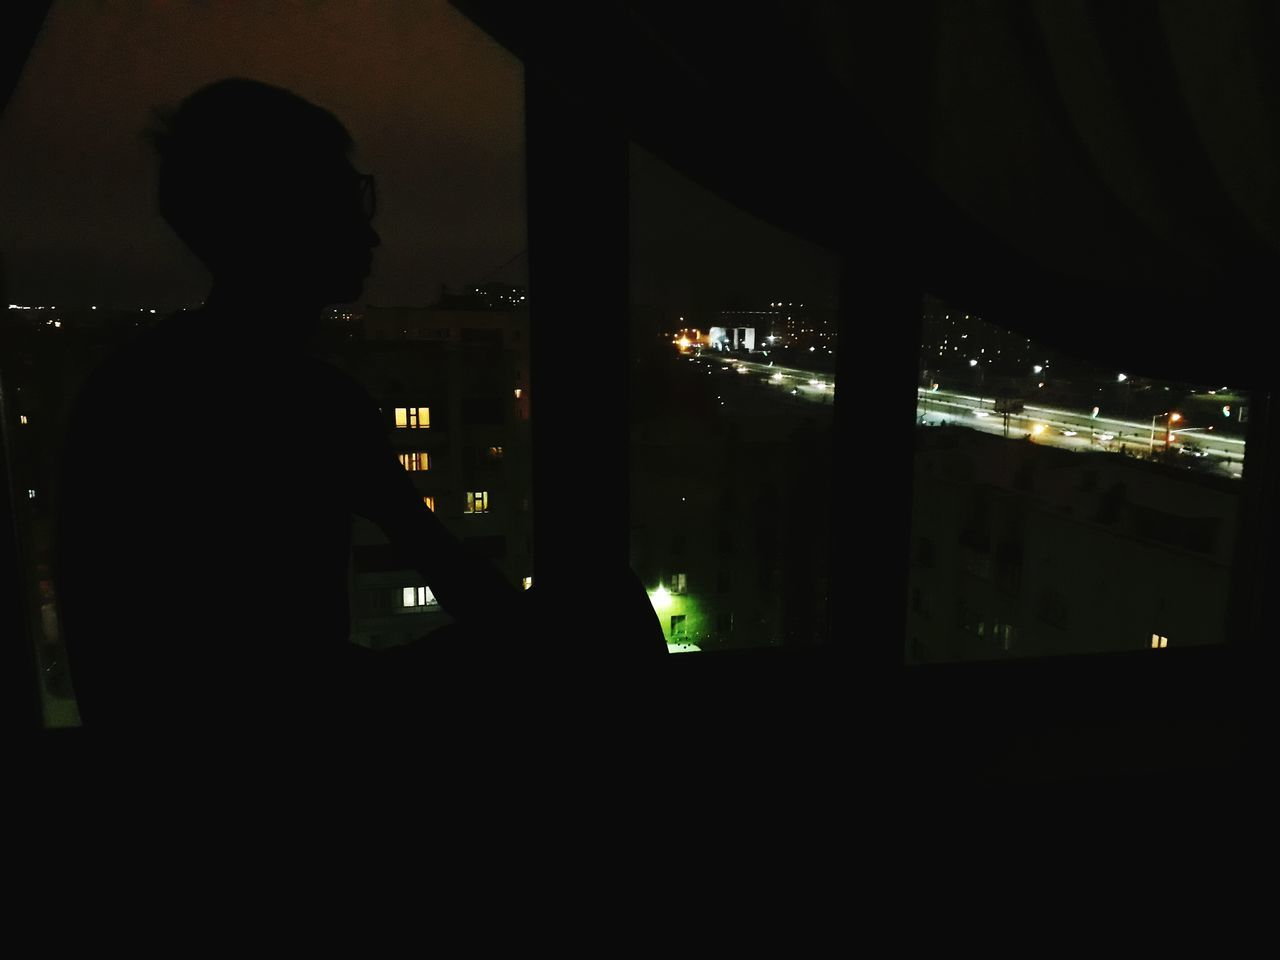 Just Sitting There Real People Shades Of Darkness One Man Only Window Looking Through Window One Person Only Men Standing Adults Only Men City Adult People Night Indoors  Cityscape